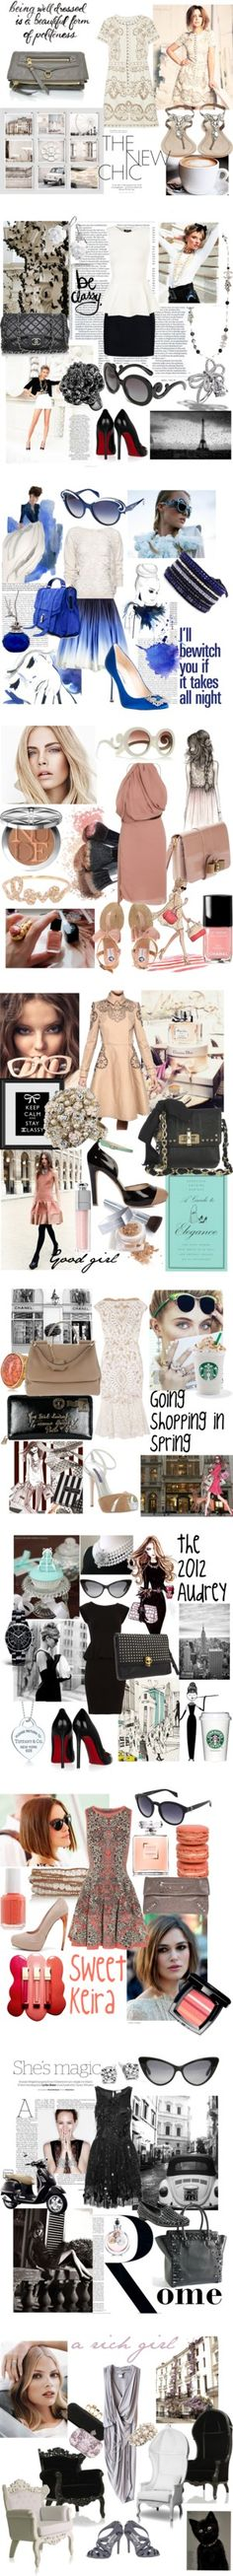 """""""a good girl's story"""" by princessekiki ❤ liked on Polyvore"""